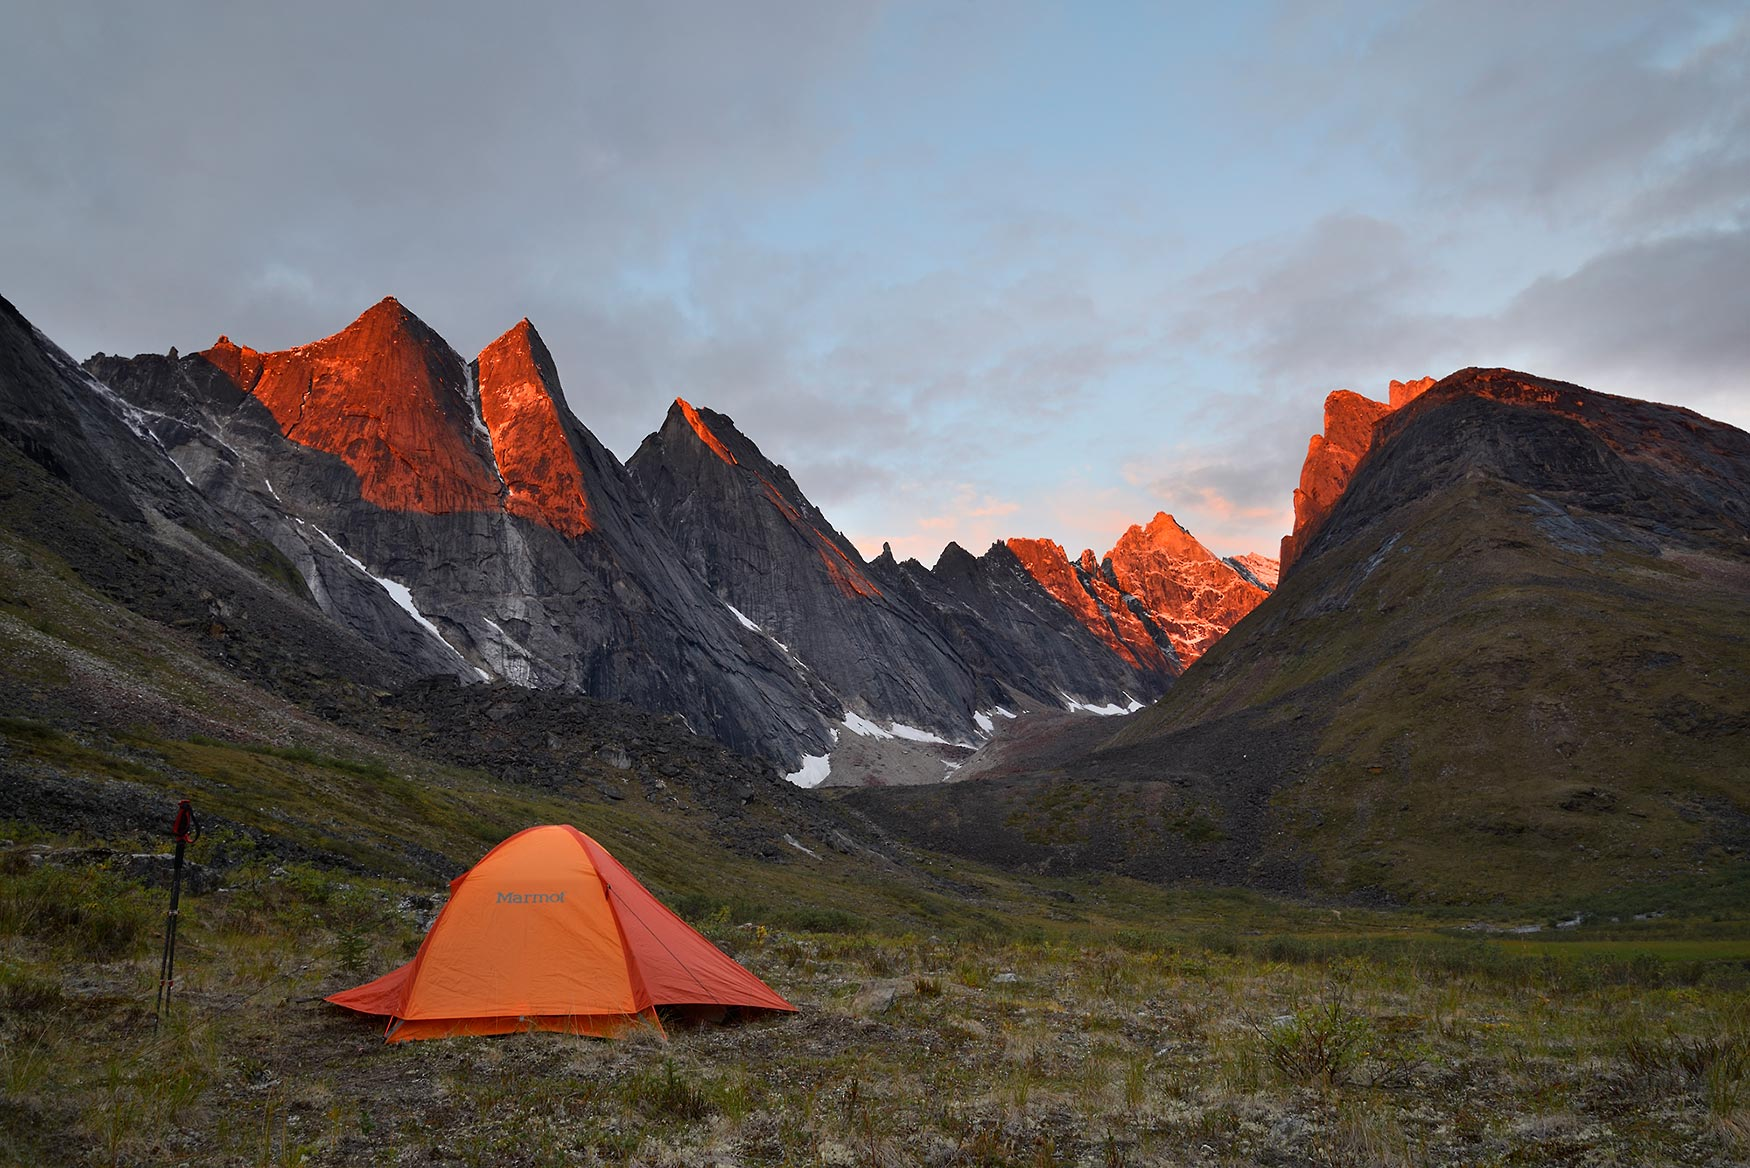 Guided backpacking trips Arrigetch Peaks The Maidens, backpacking trip Arrigetch Peaks, Gates of the Arctic National Park, Alaska.